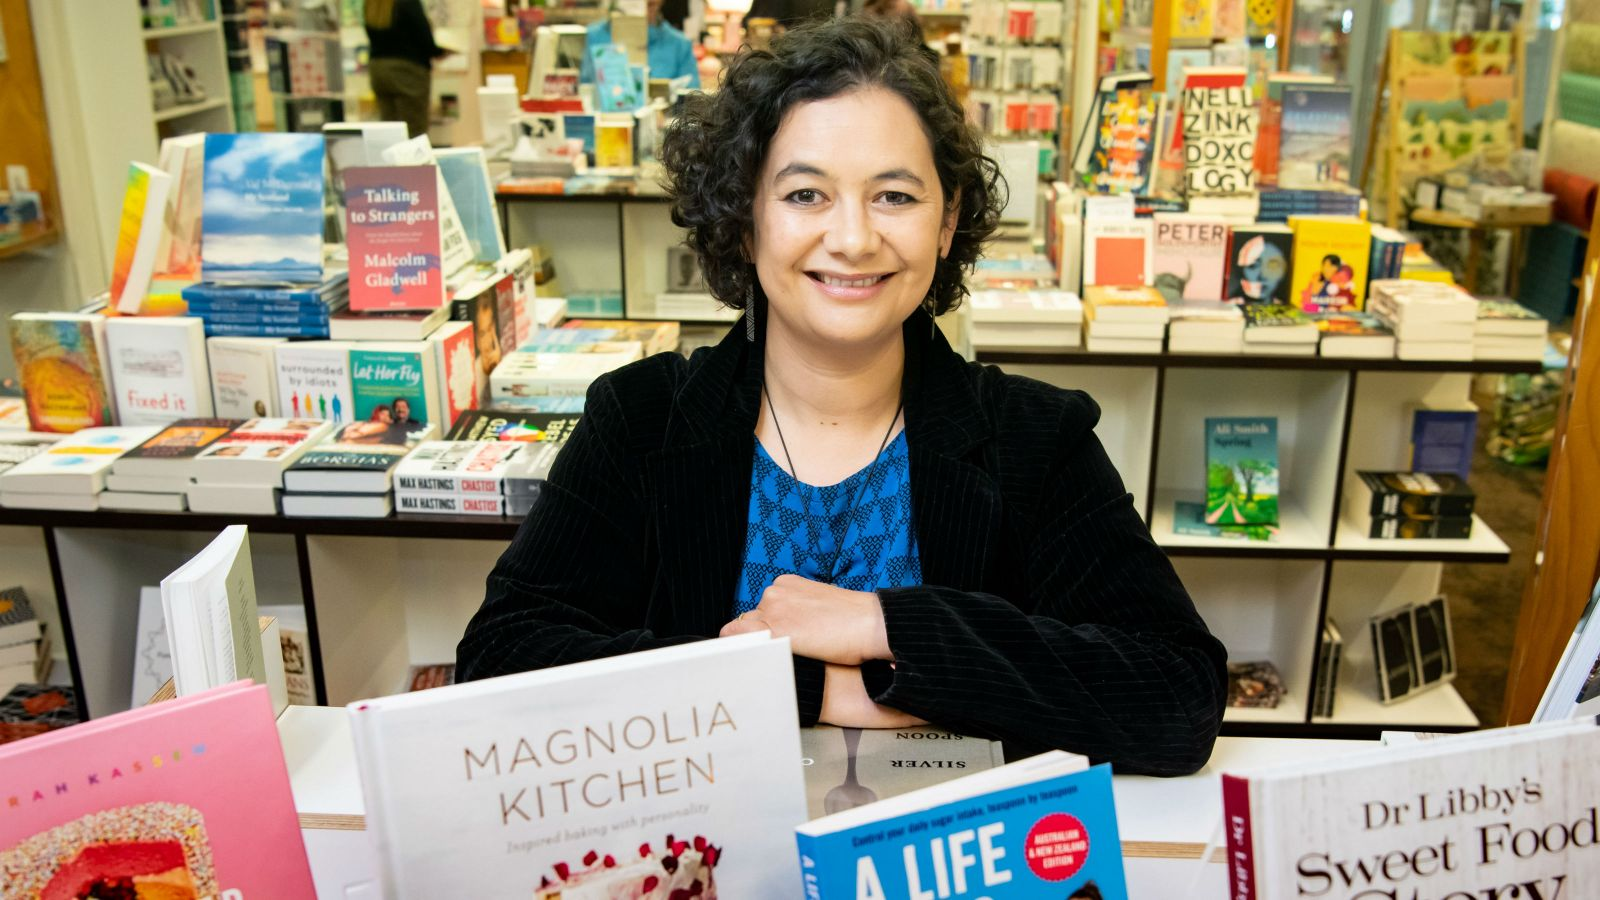 Lisa Te Morenga posing for a photo in a bookshop with books about sugar in the foreground